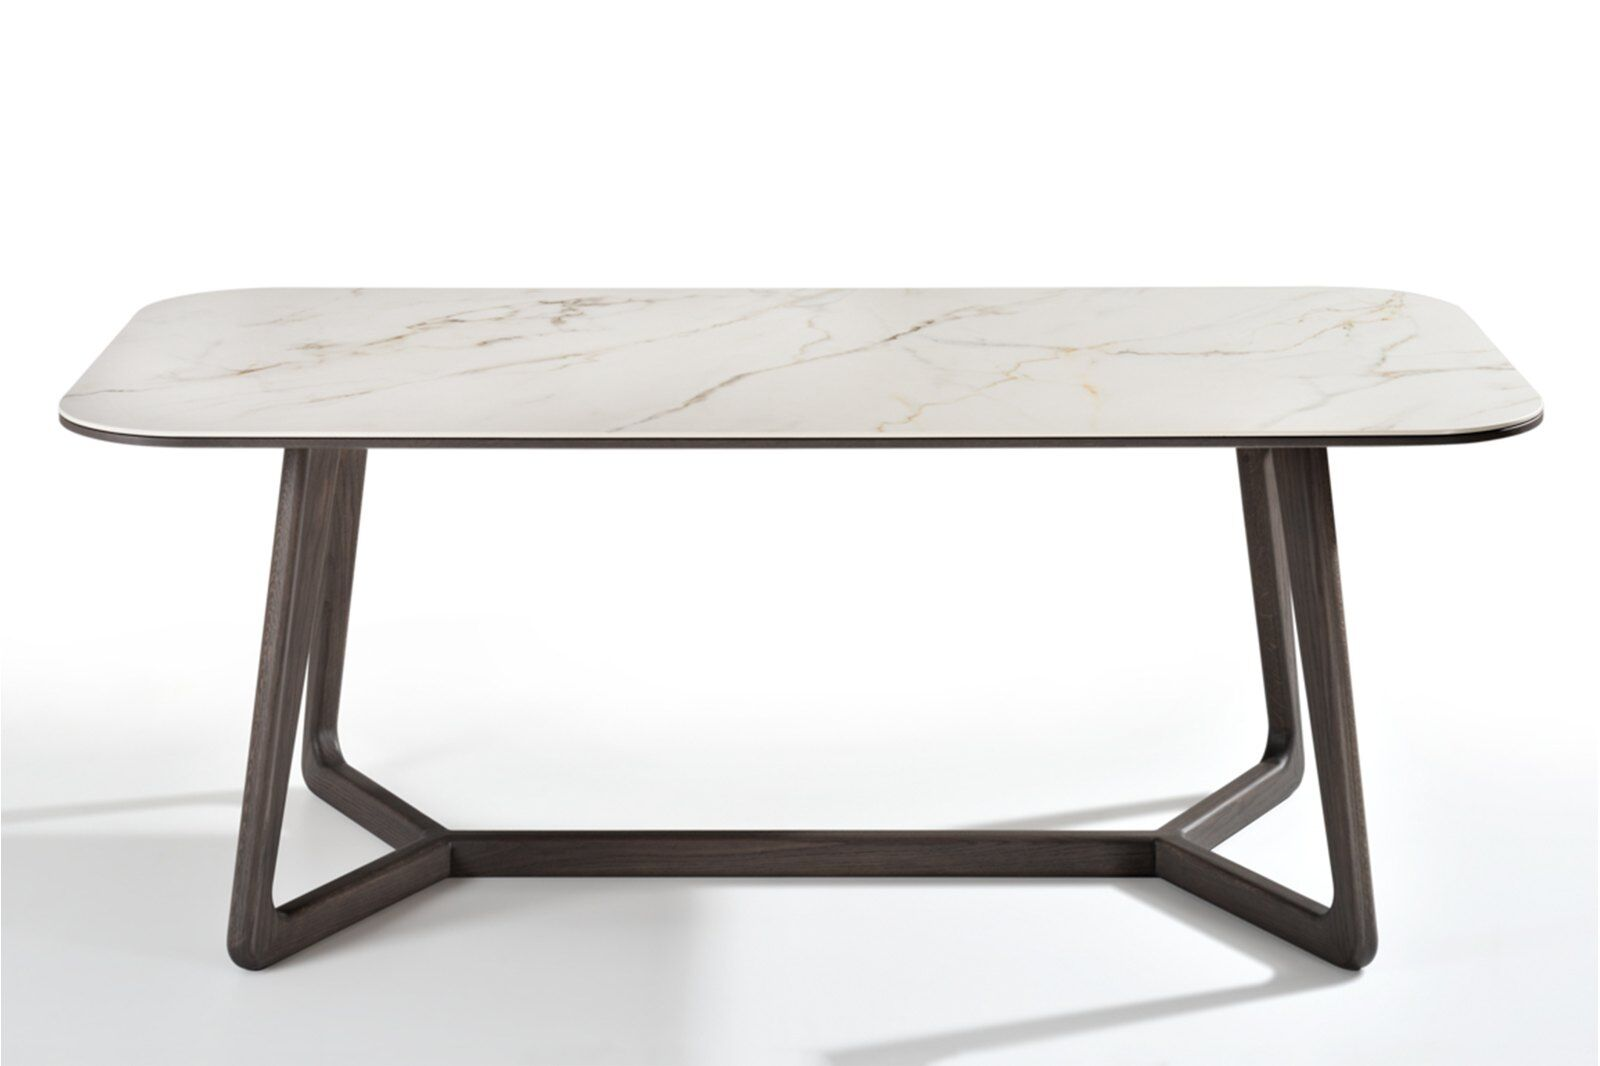 Totem Marble-effect Ceramic Top Dining Table 180cm / 1